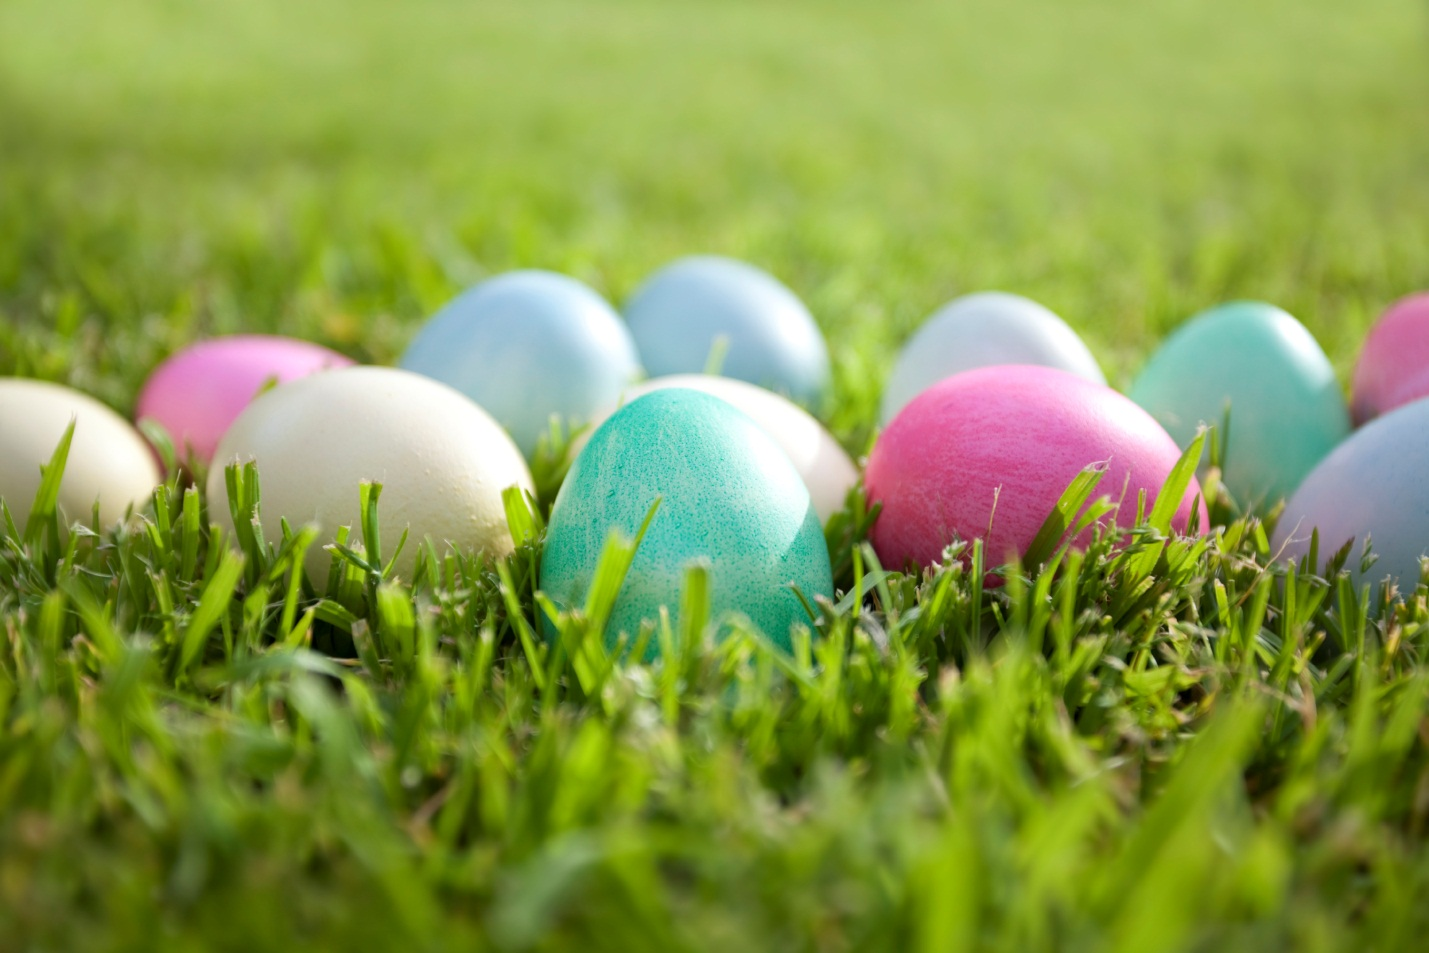 Coloured eggs on grass